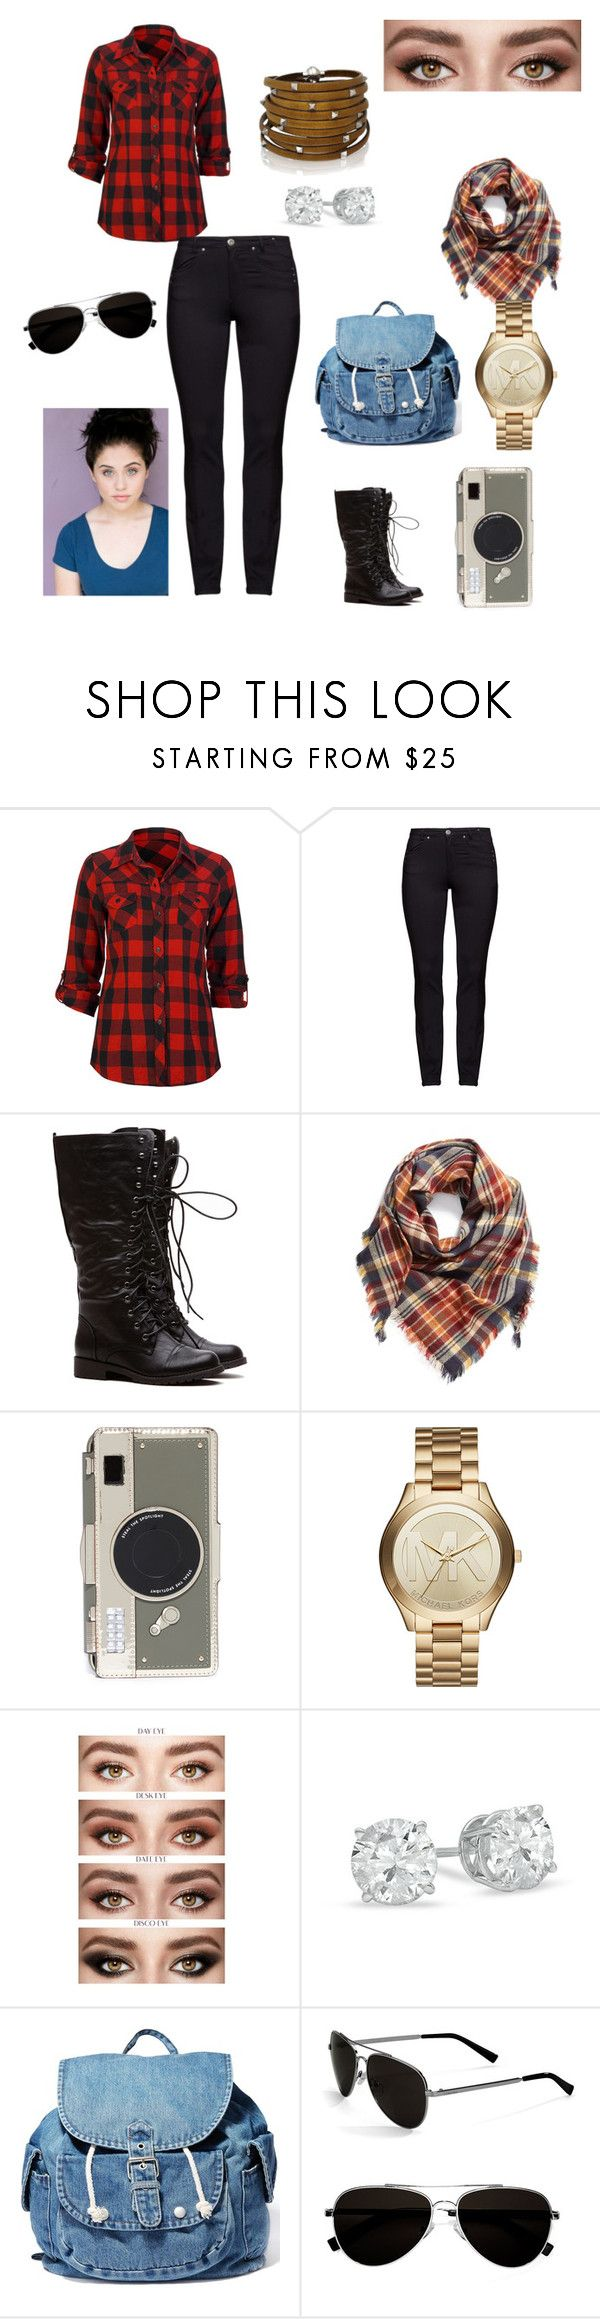 """""""Abigail Turner"""" by bruna-rogers on Polyvore featuring Full Tilt, DNY, BP., Kate Spade, Michael Kors, Dance & Marvel, Calvin Klein, Sif Jakobs Jewellery and plus size clothing"""